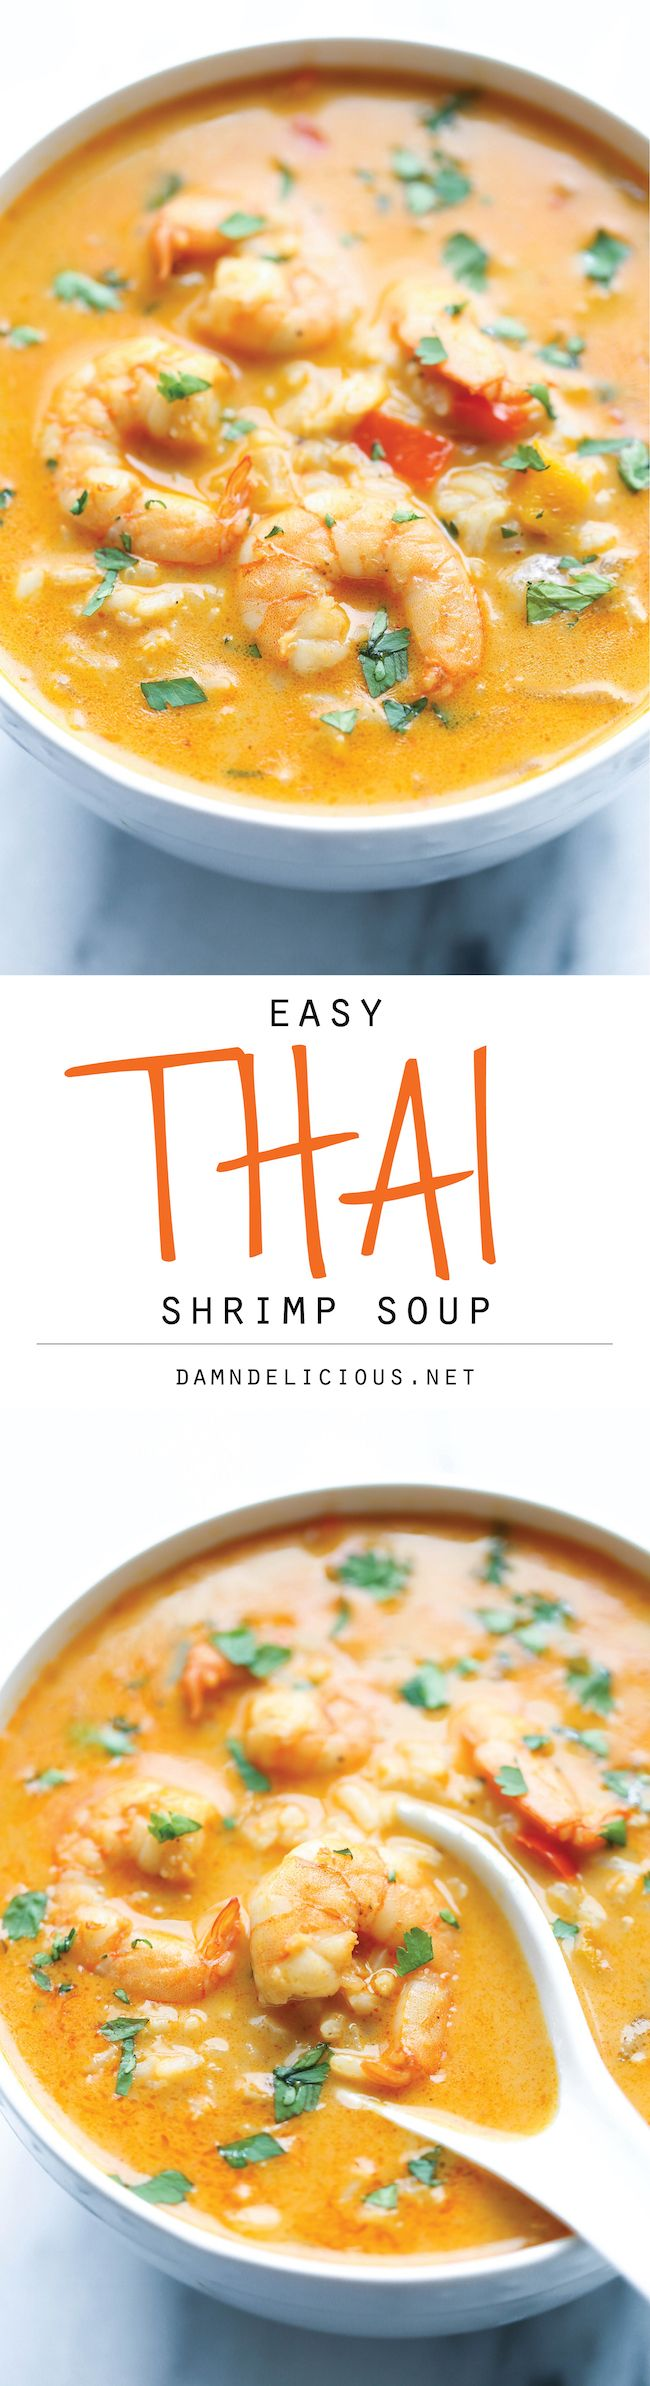 Easy Thai Shrimp Soup – Skip the take-out and try making this at home – it's unbelievably easy and 10000x tastier and healthier!